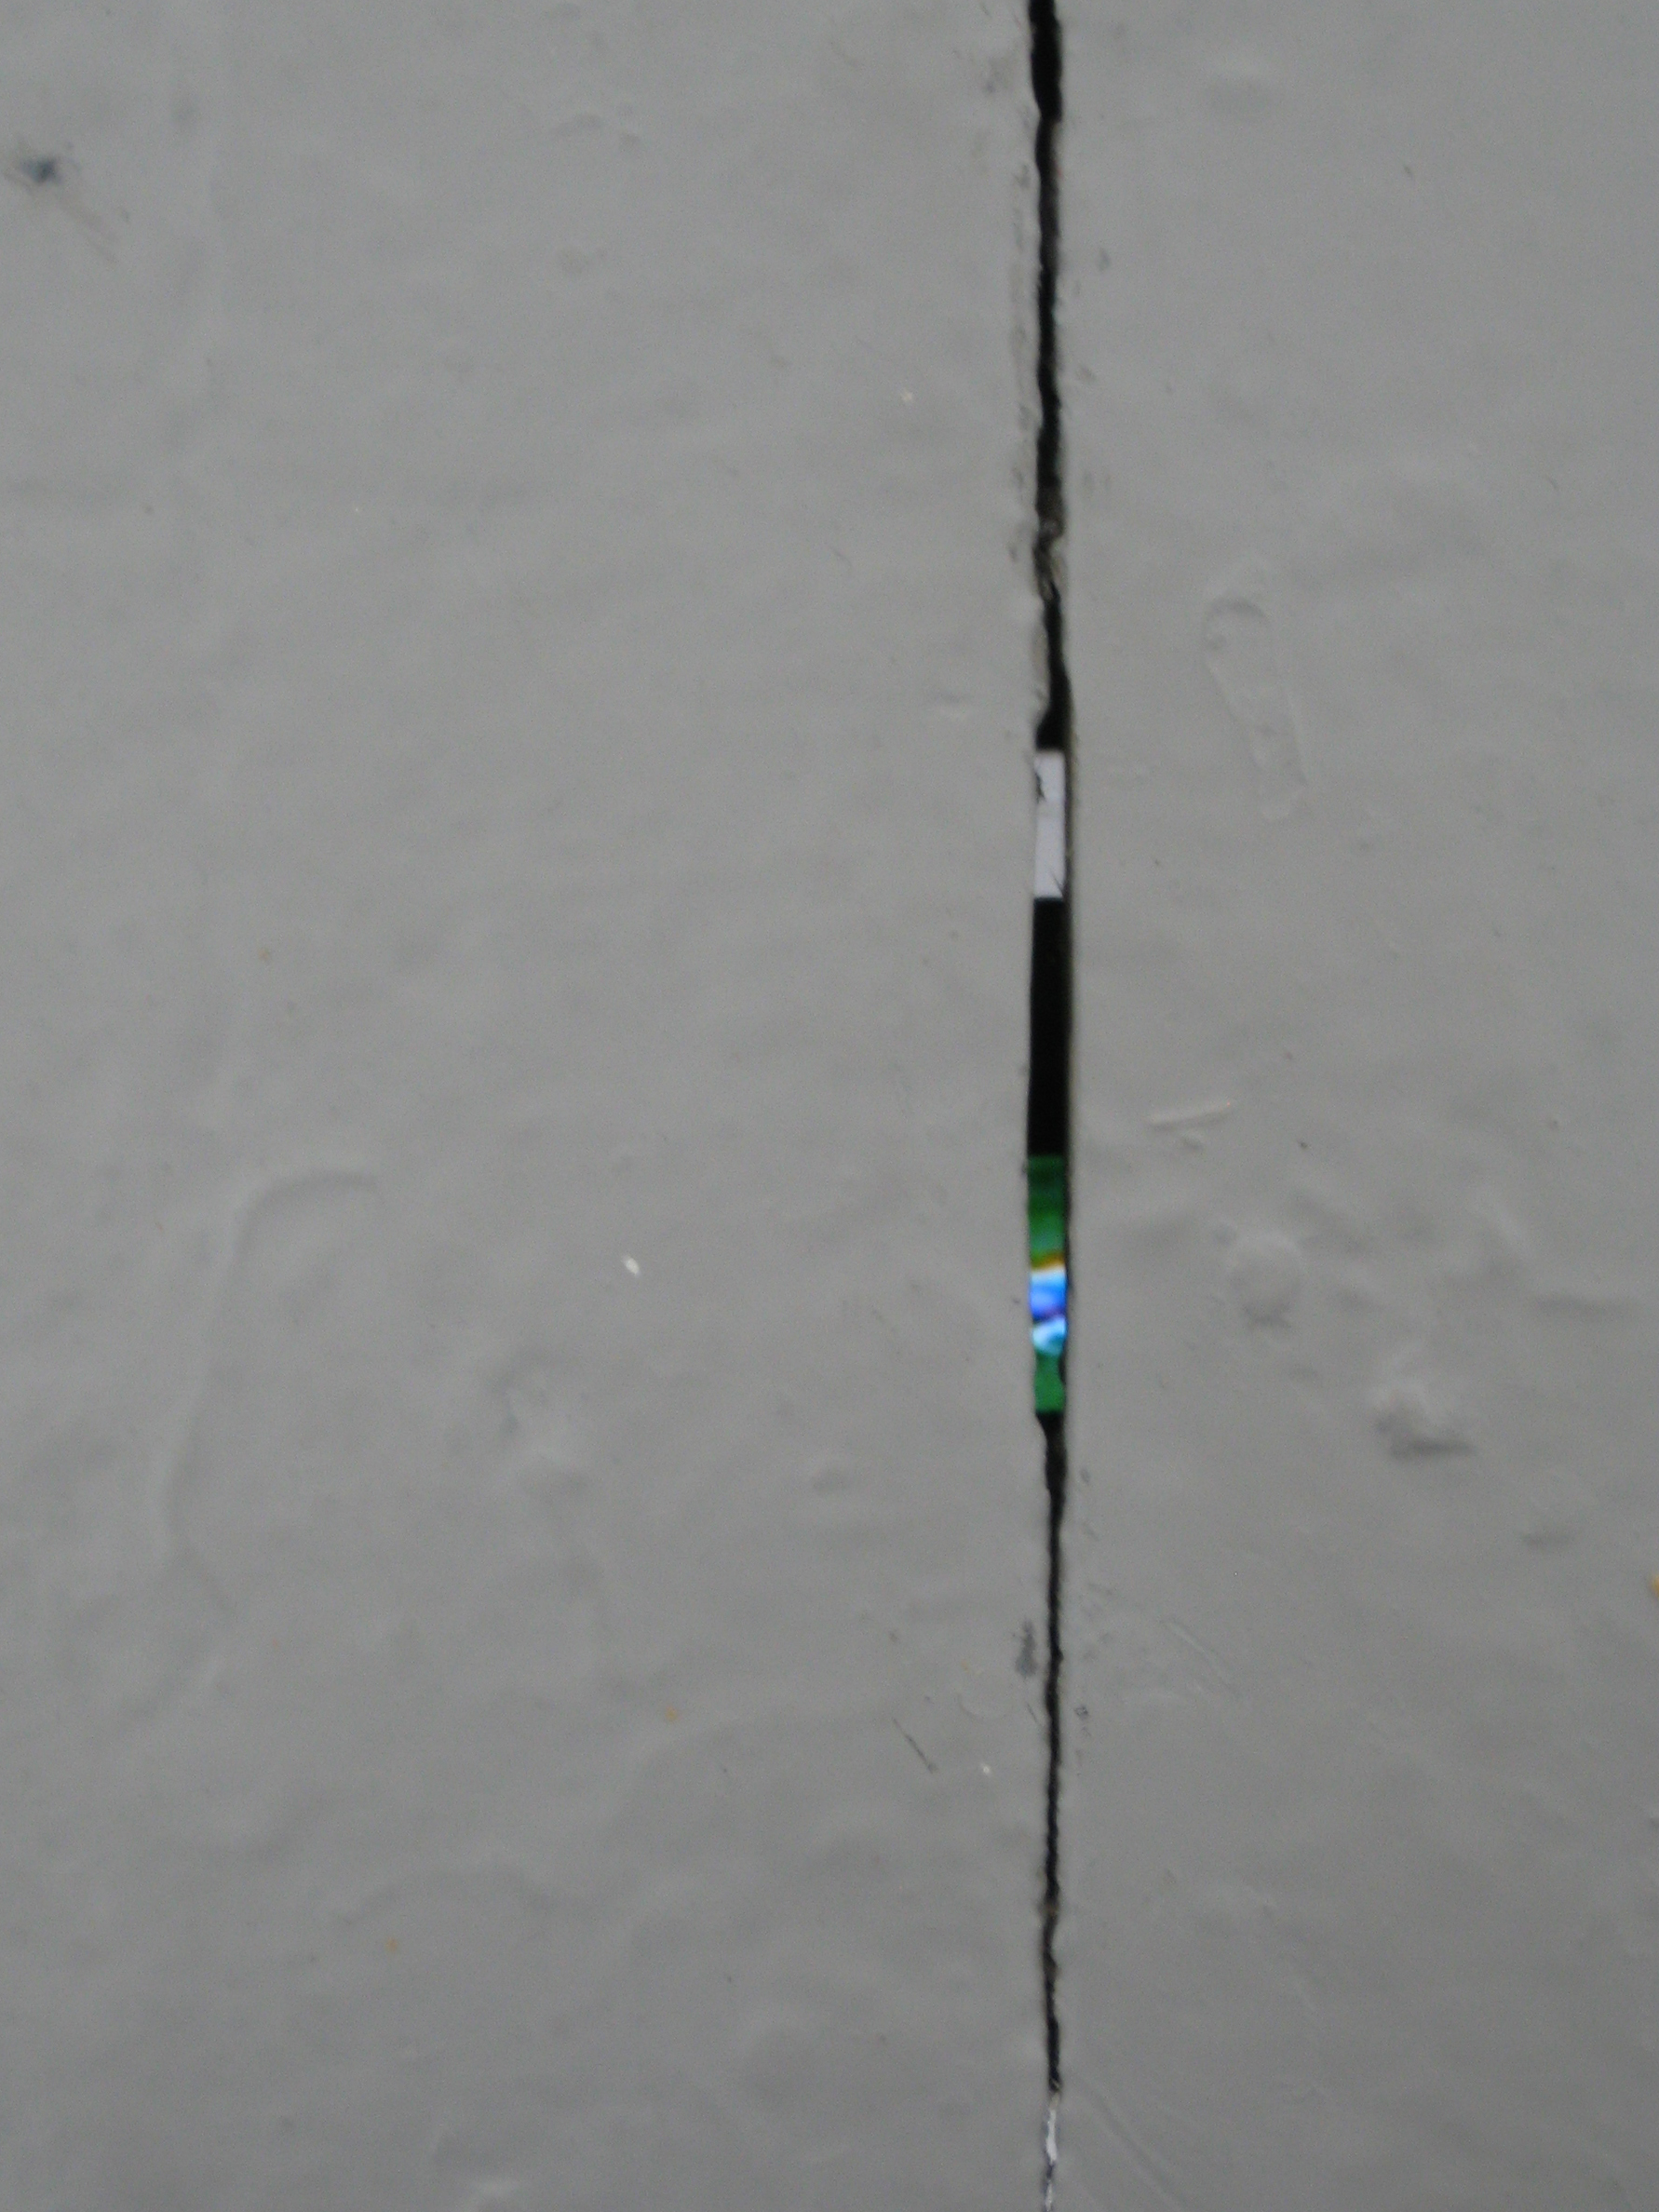 grey painted floorboards with a small gap between them, the colourful pixels of a mobile phone can be glimpsed.